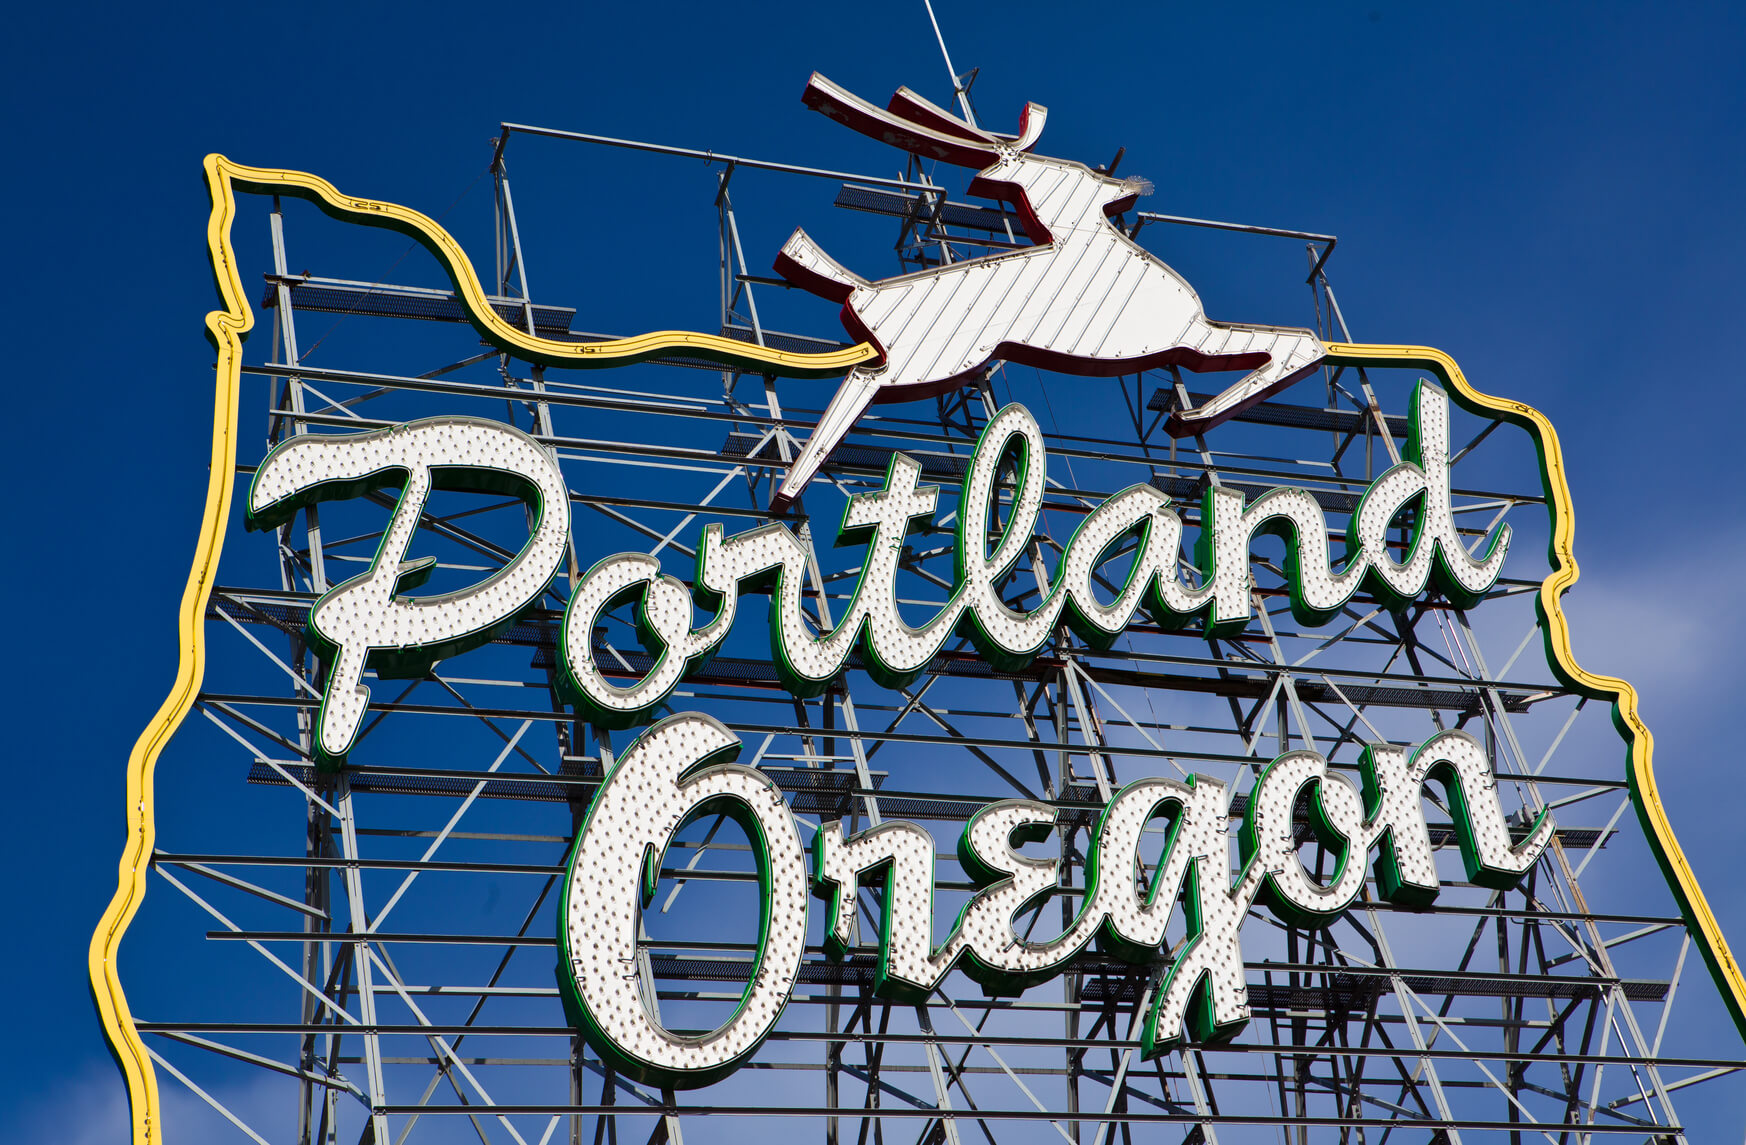 XMAS: Seoul, South Korea to Portland, Oregon for only $487 USD roundtrip (Nov-Apr dates)